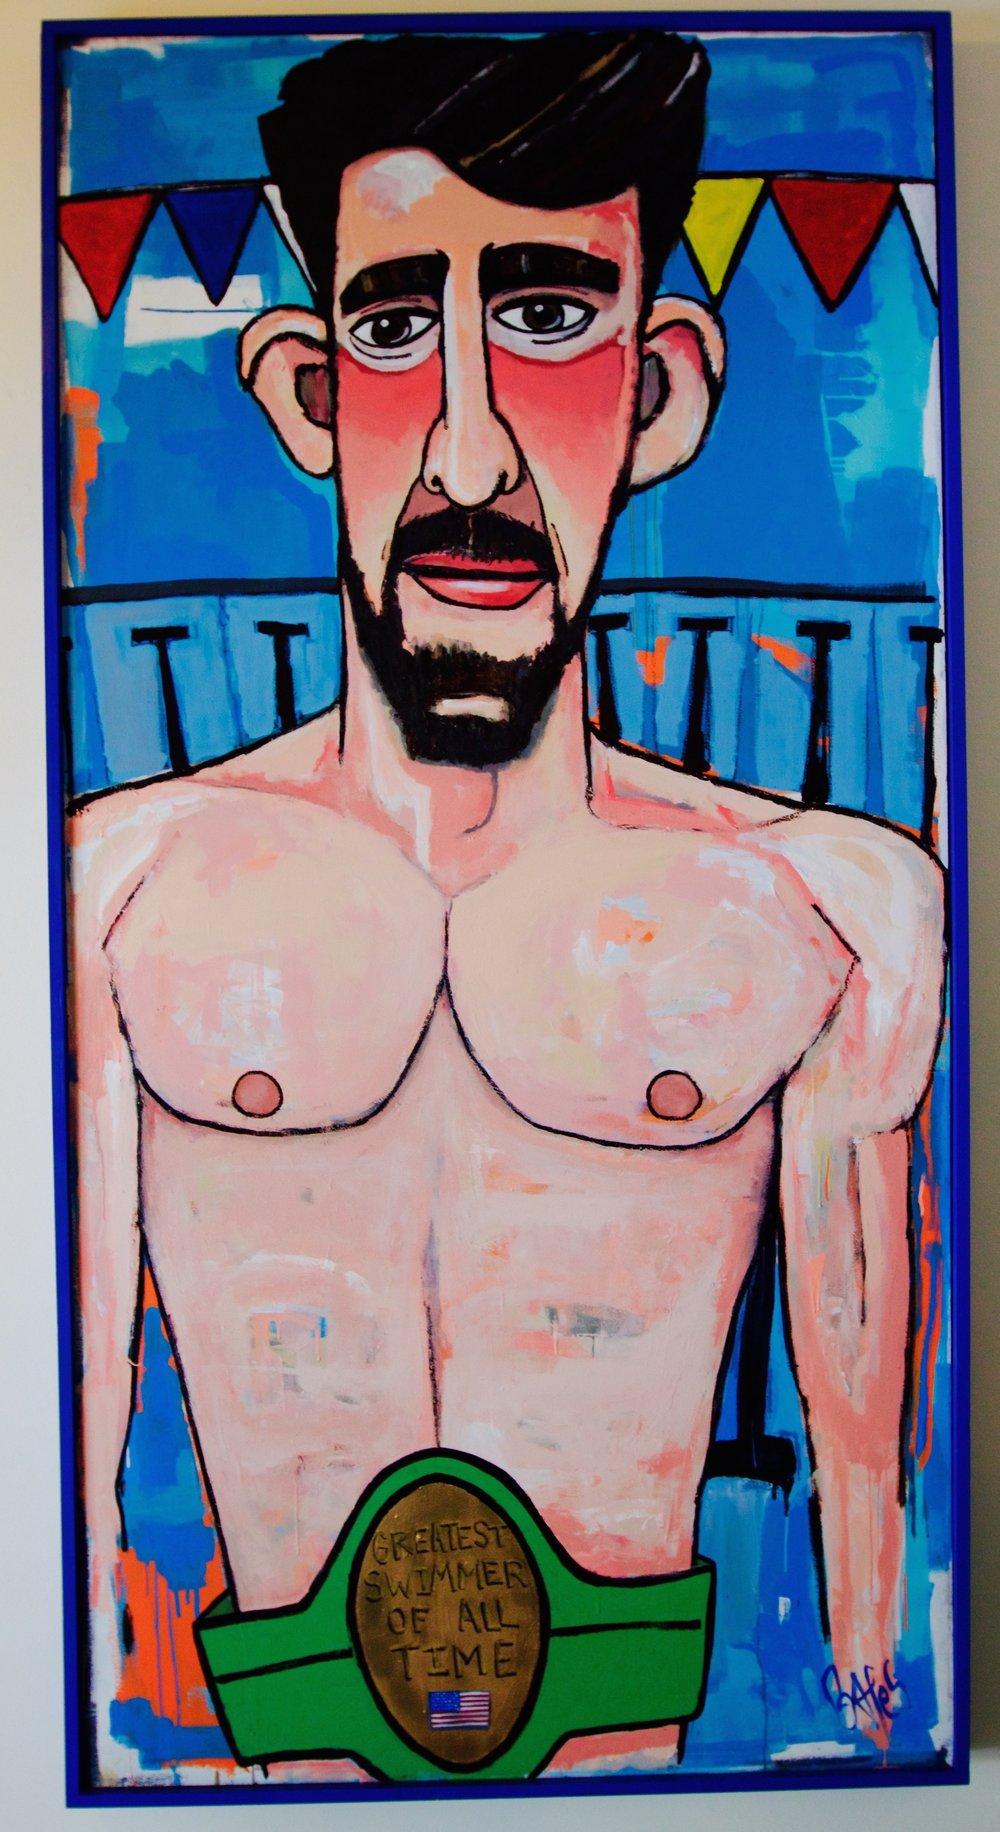 Greatest Swimmer of All Time - Michael Phelps / 8ft. x 4ft. / Paint on wood / email for pricing